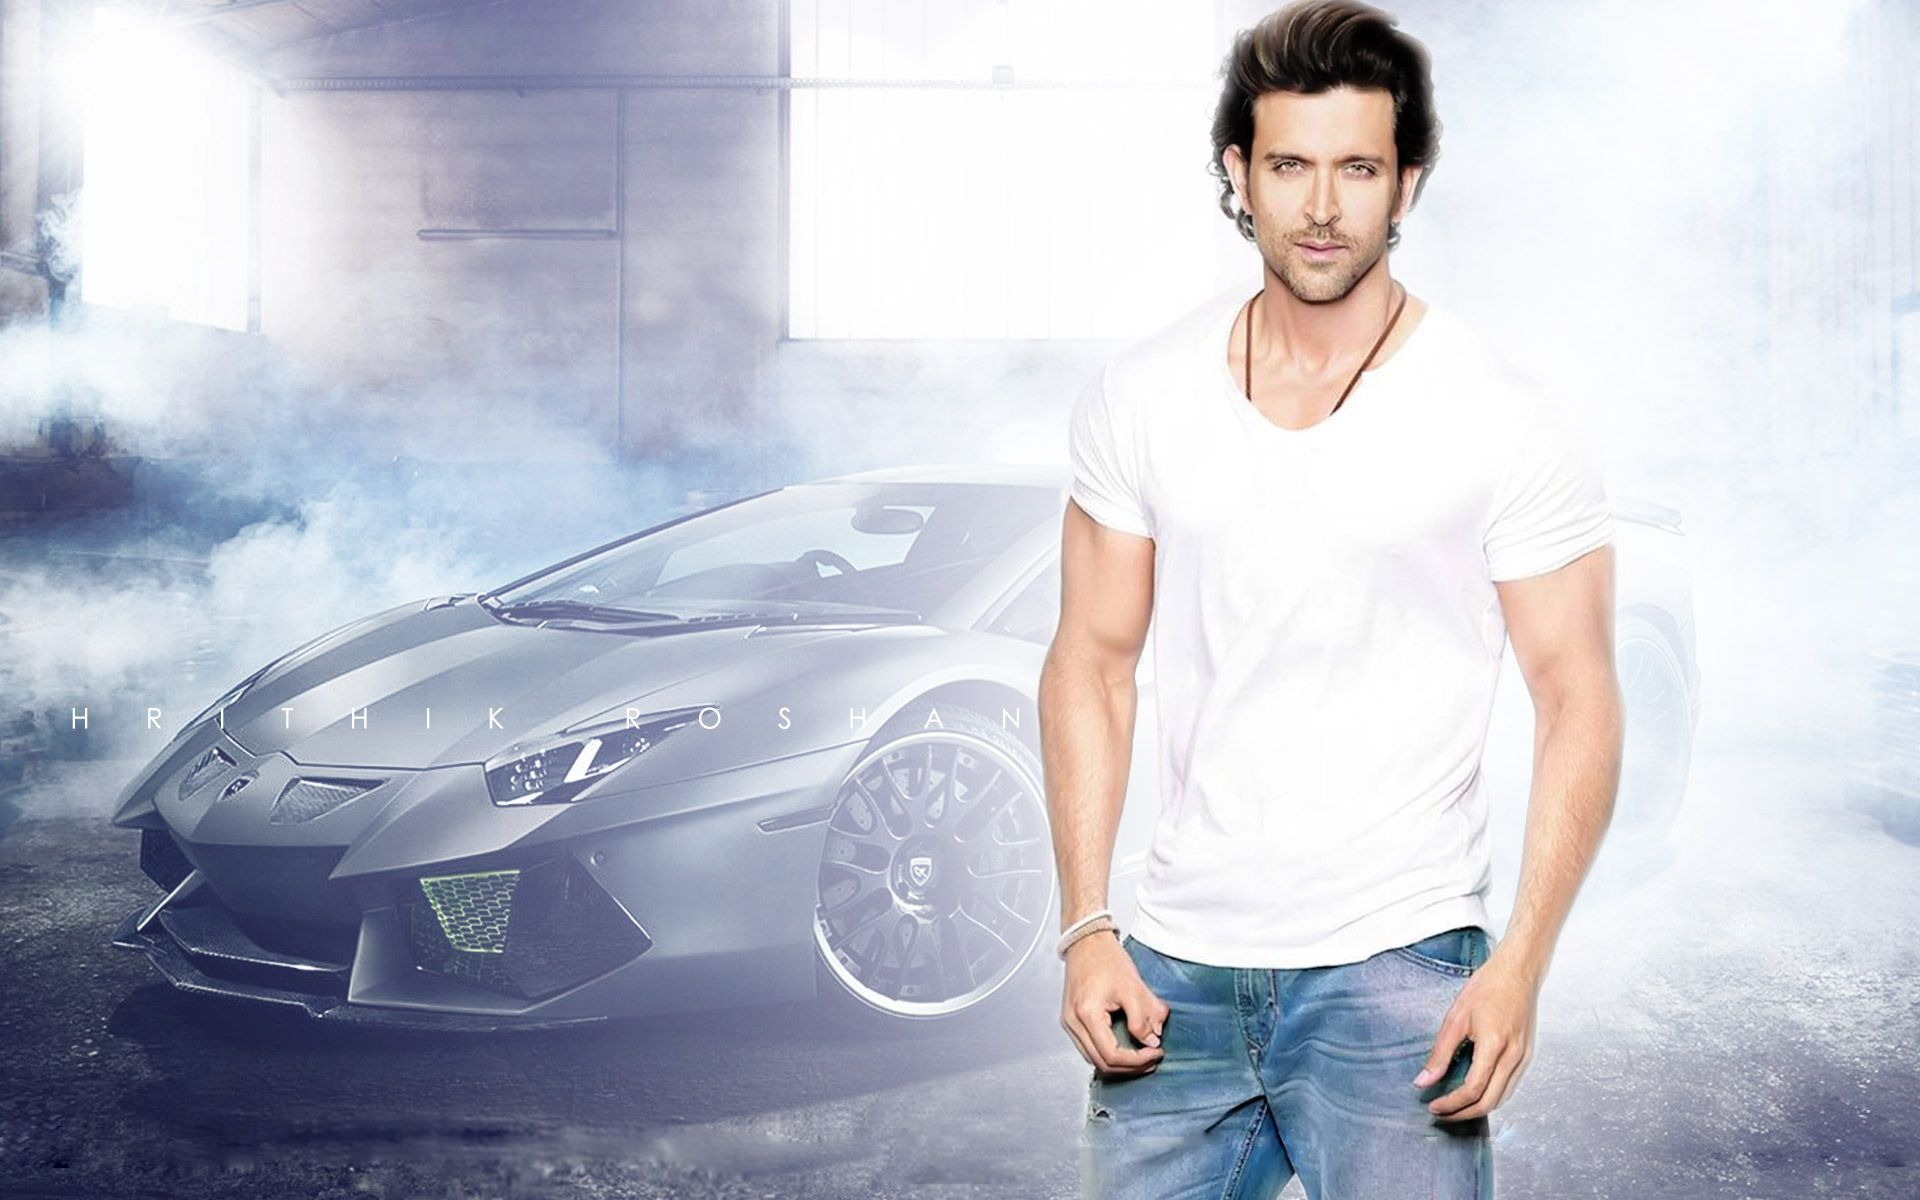 Bollywood Male Actors Wallpapers 1080p Hd Wallpapers Desktop Hd